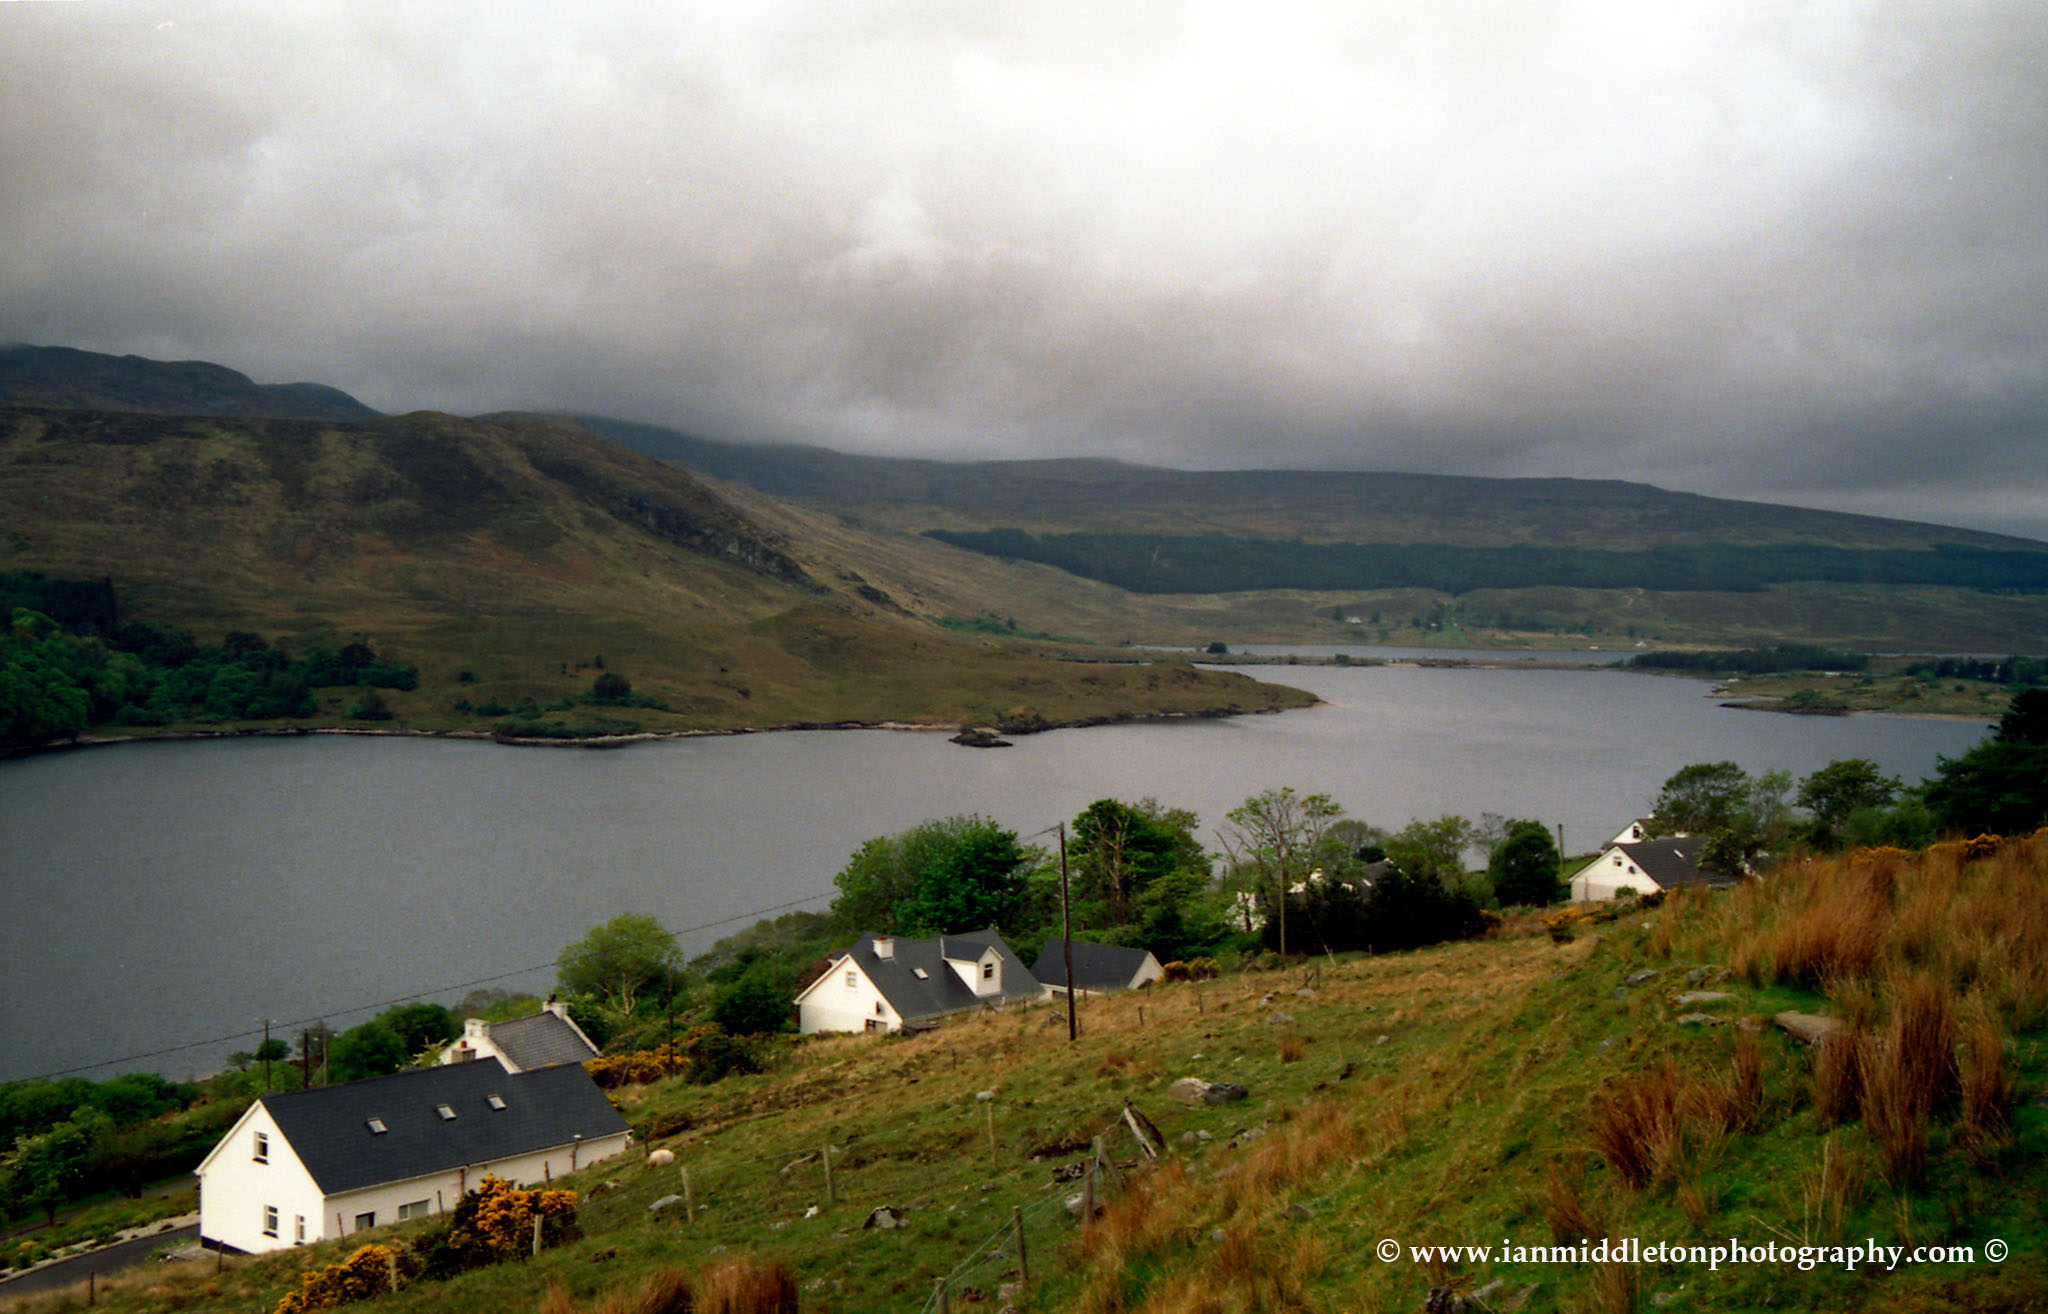 Views across the Poisoned Glen in Northern County Donegal, Ireland.